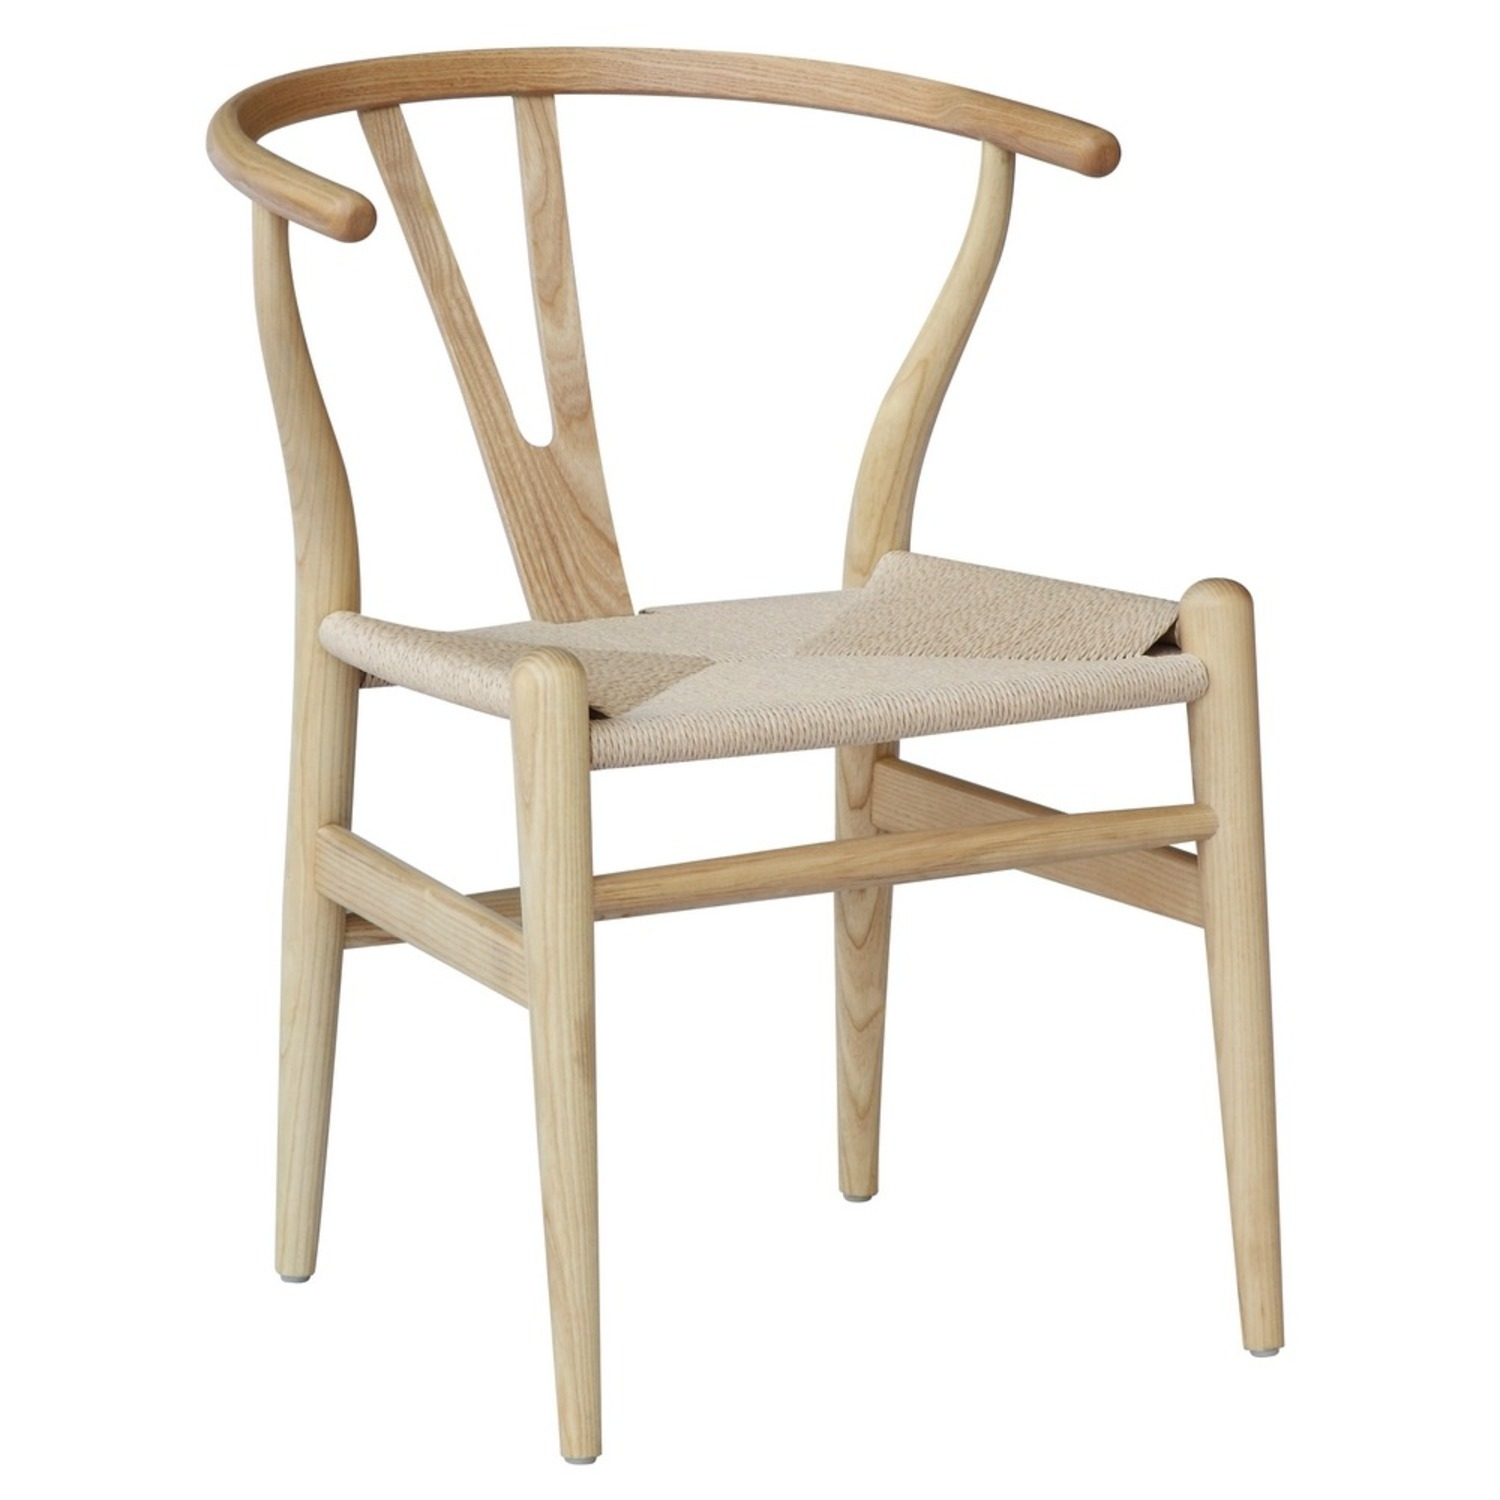 Dining Chair In Natural Frame & Natural Hemp Seat - image-0